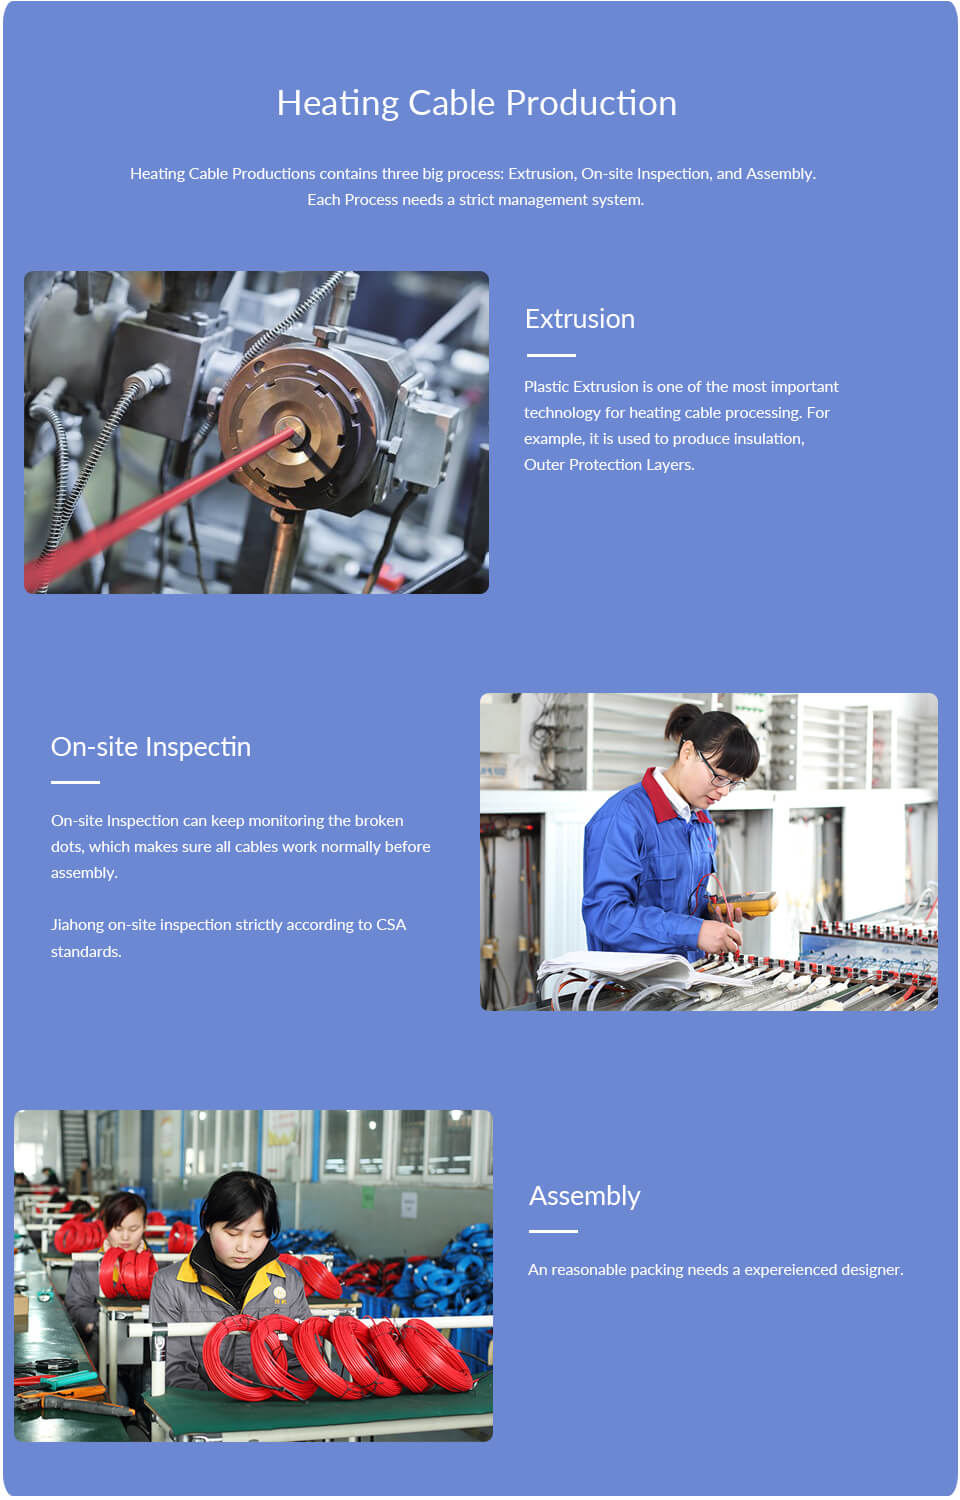 Heating Cable Production